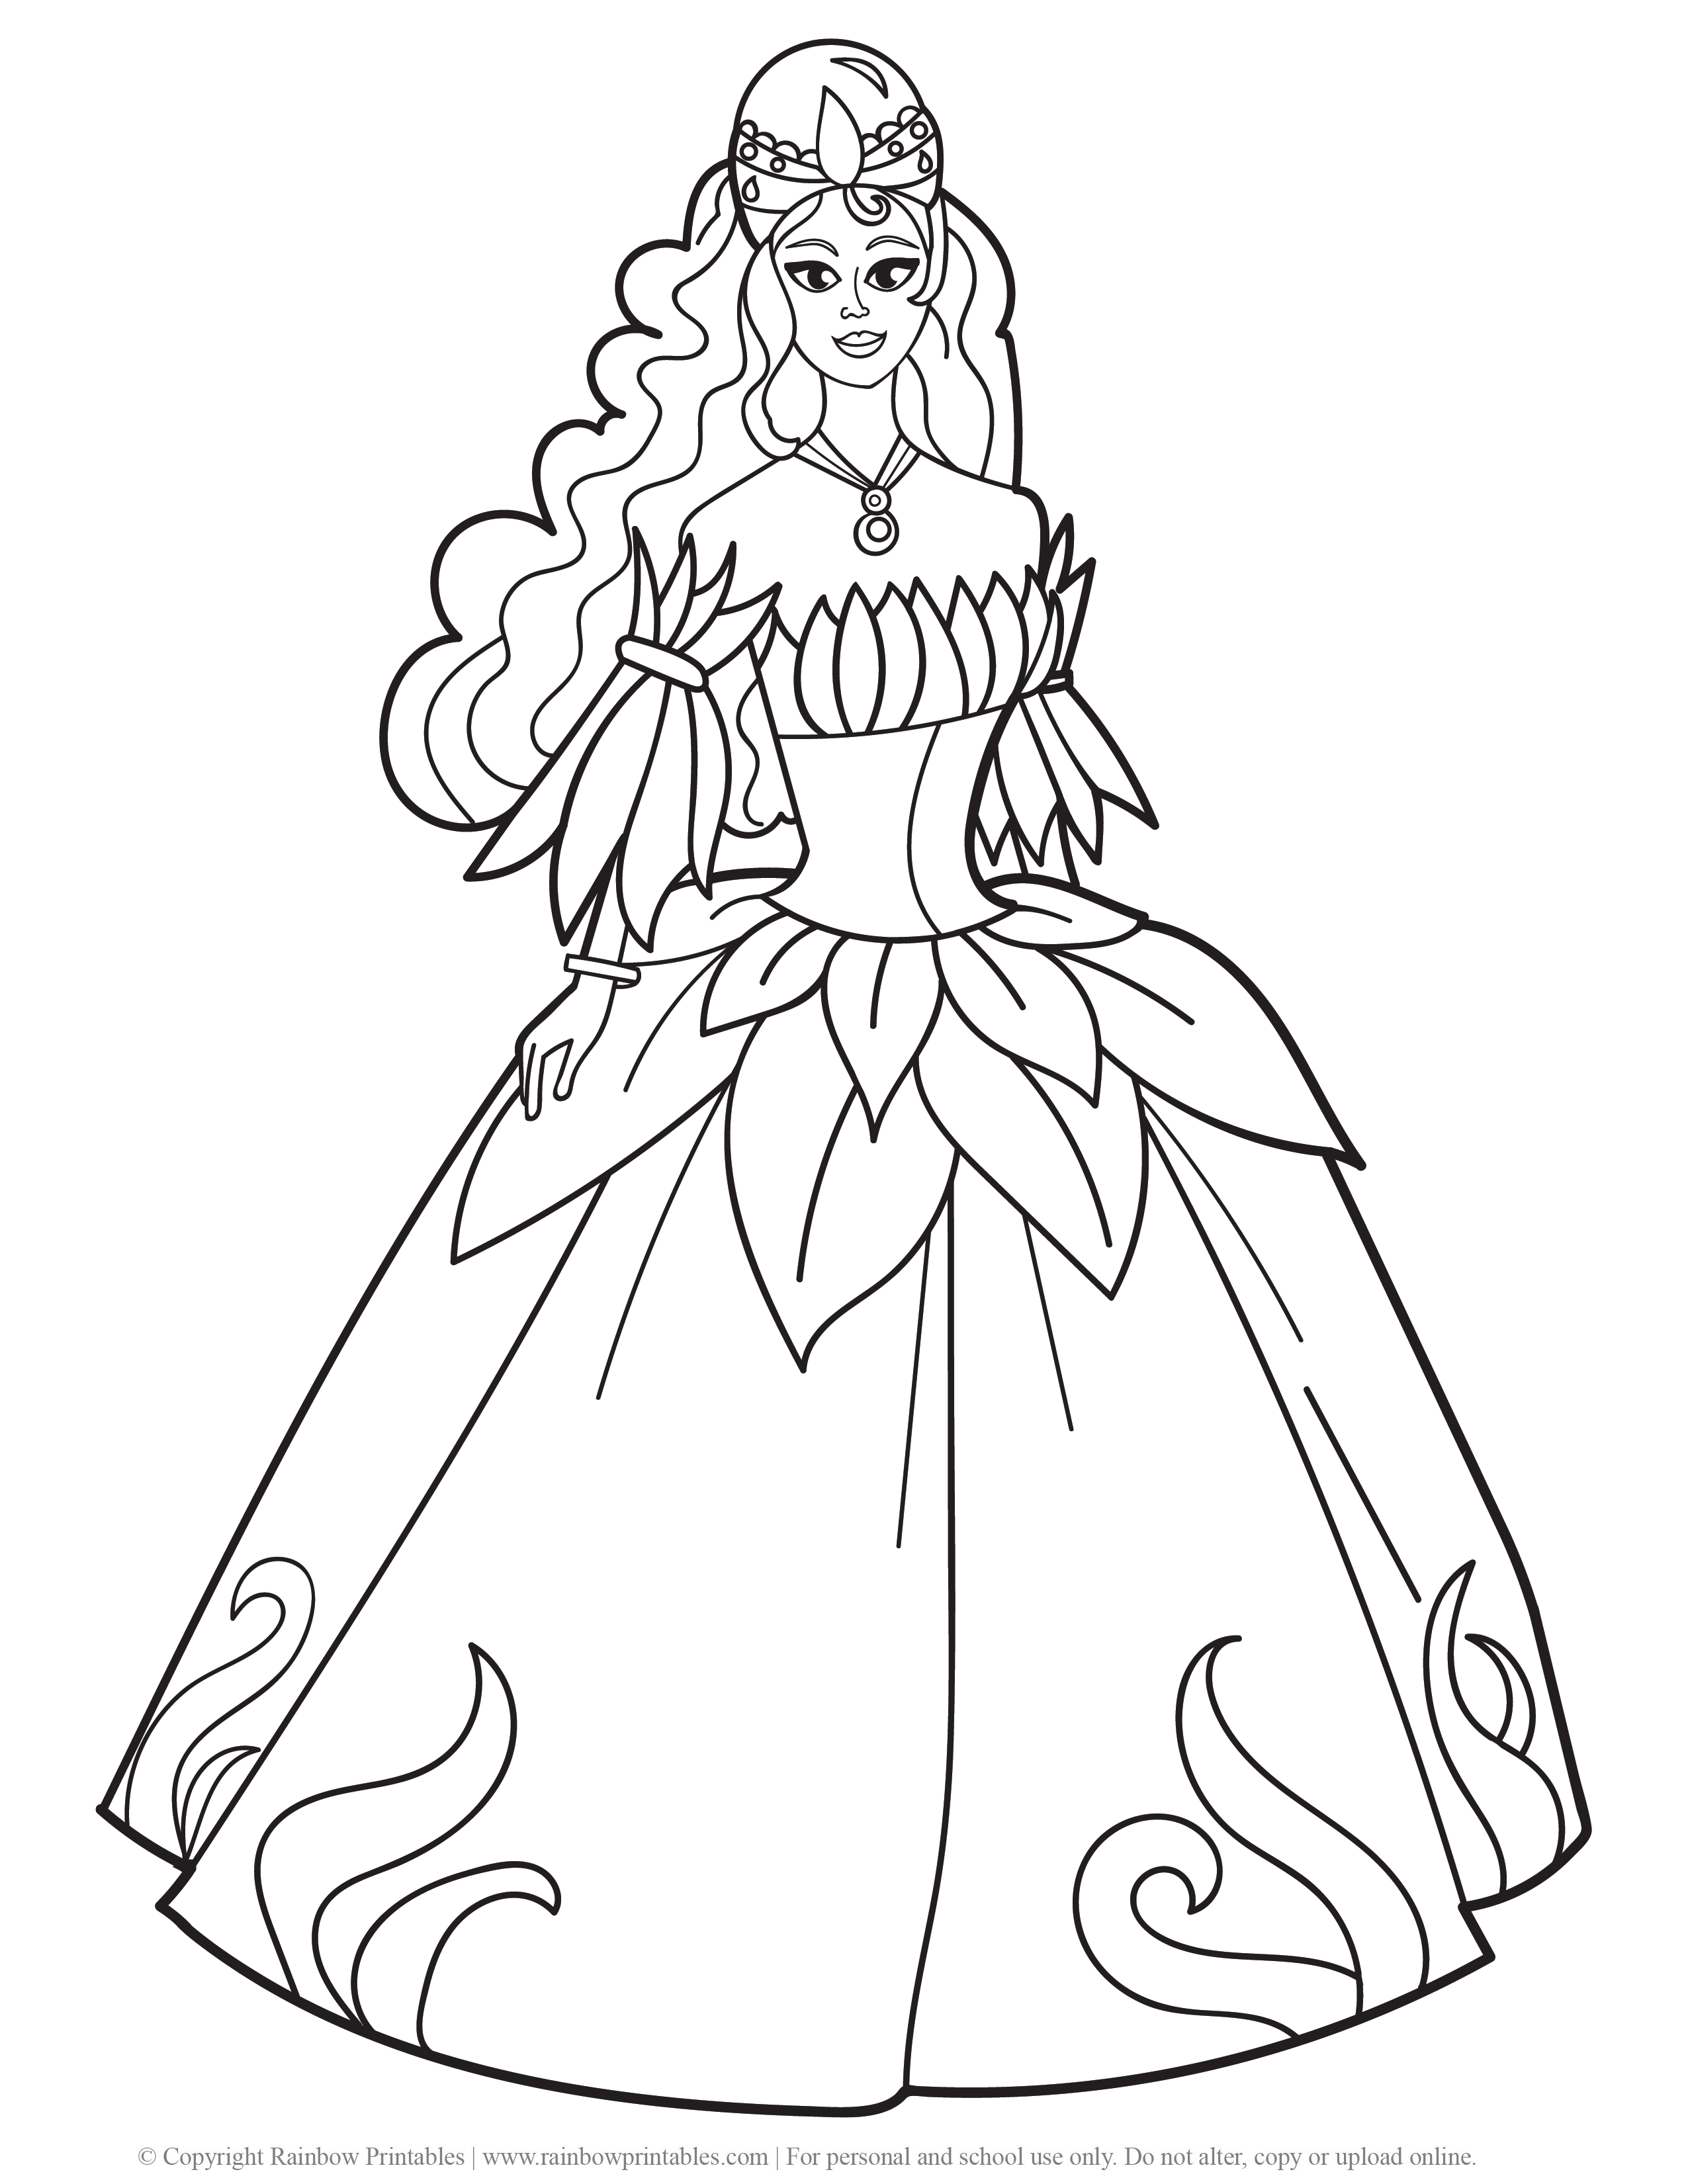 Cute Princess Coloring Pages For Girls Rainbow Printables